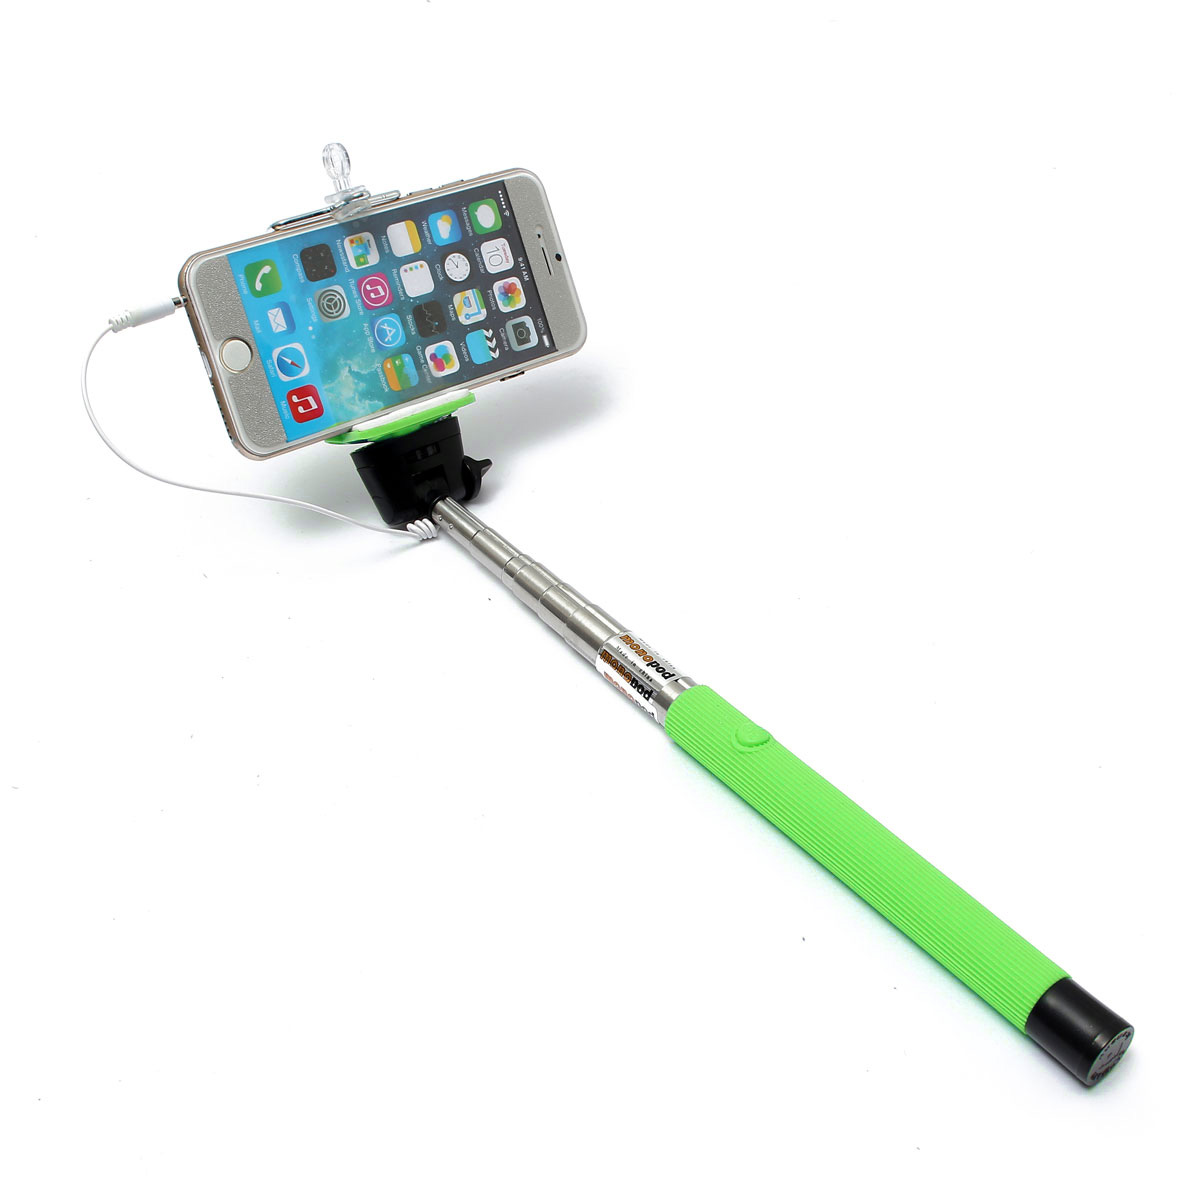 extendable wired remote shutter handheld selfie stick monopod for iphone ipod. Black Bedroom Furniture Sets. Home Design Ideas